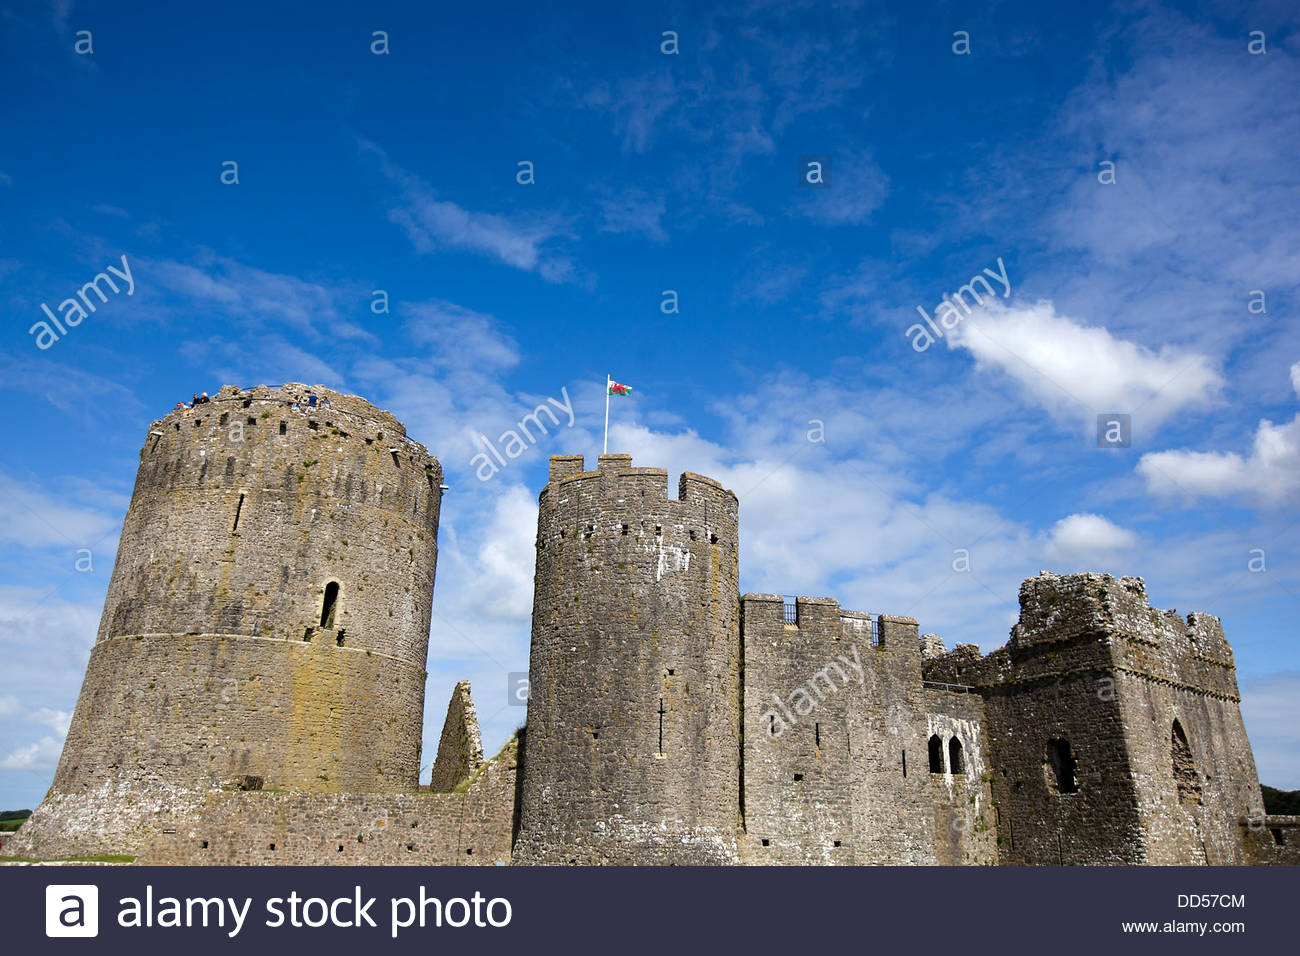 Pembroke Castle Pembroke (Penfro), Pembroke Castle (Welsh: Castell Penfro), Wales Stock Photo ...